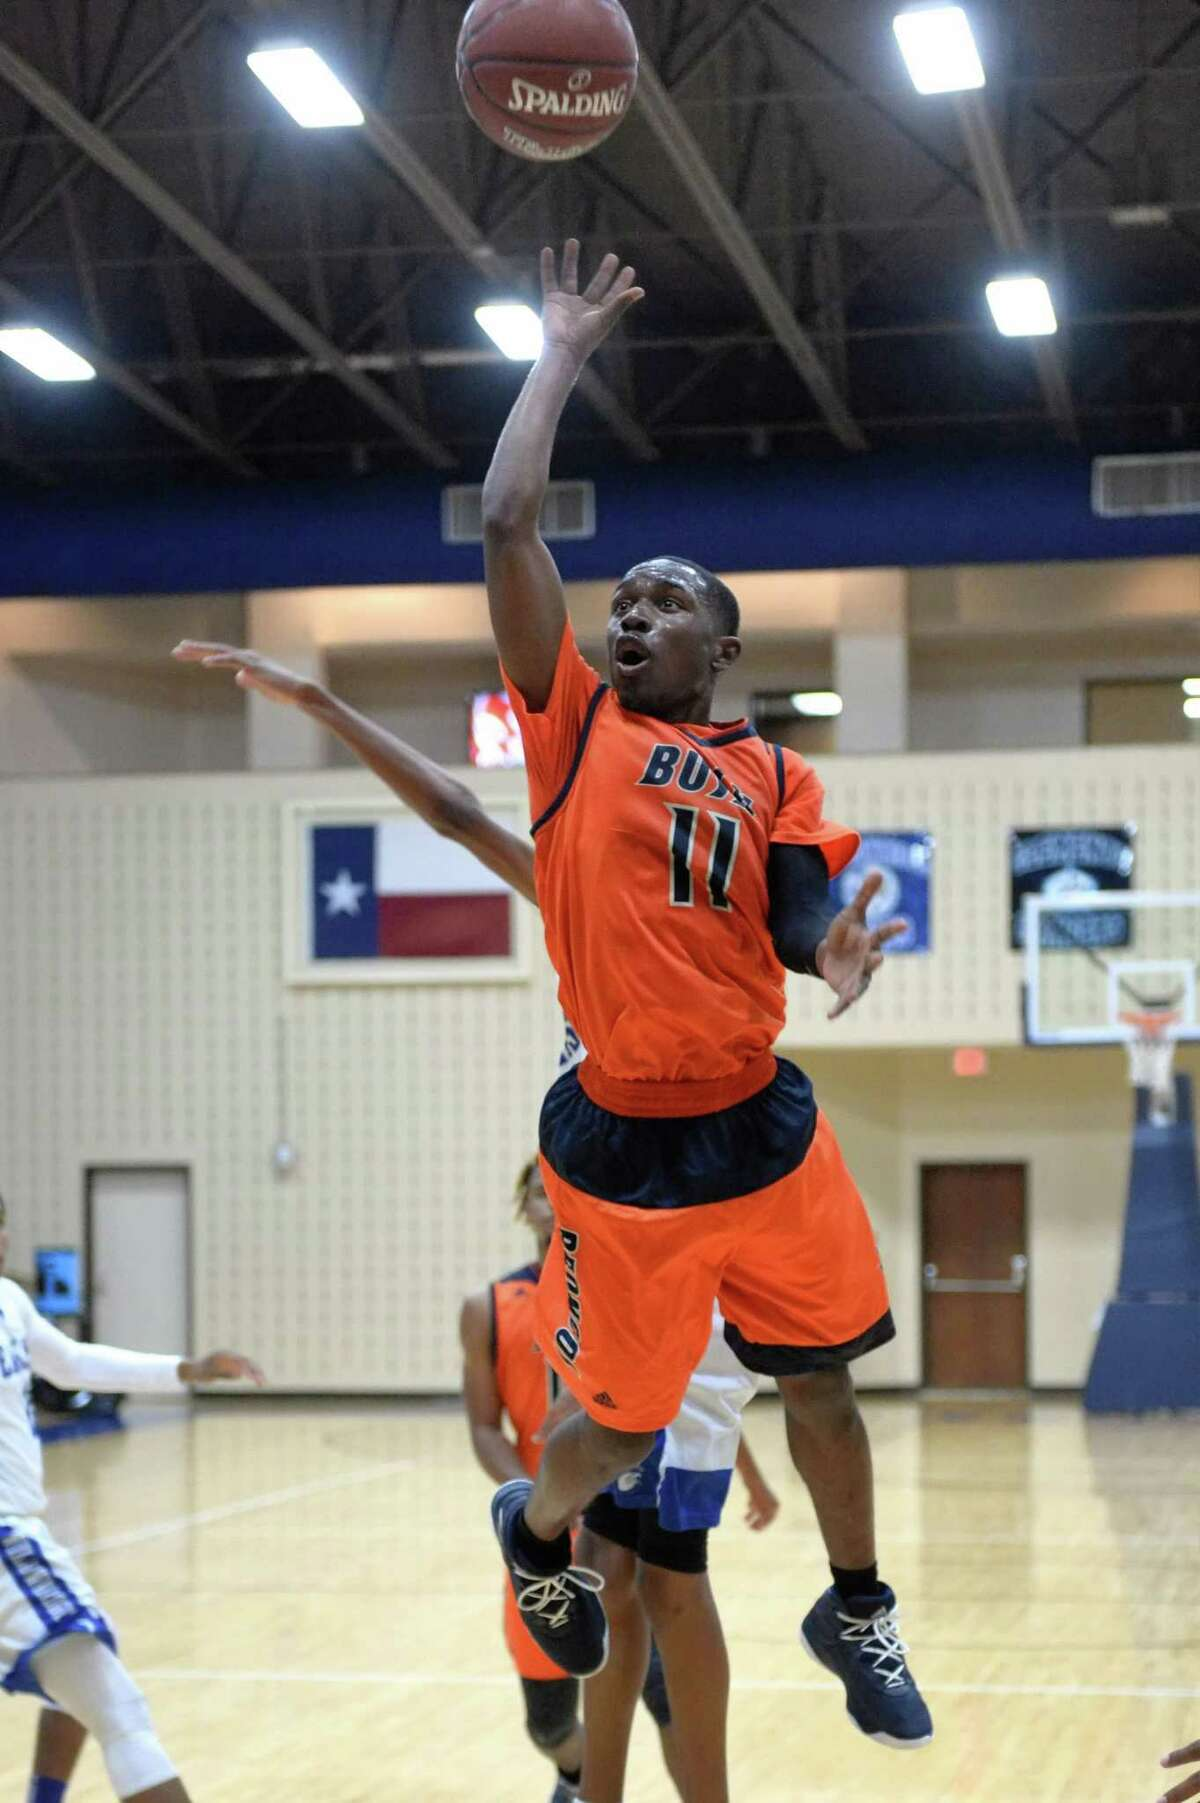 Remy Minor (11) of Bush makes a jump shot during pool play in the Fort Bend ISD Balfour Basketball Tournament between the Bush Broncos and the Willowridge Eagles on Thursday December 7, 2017 at Wheeler Field House, Sugar Land, TX